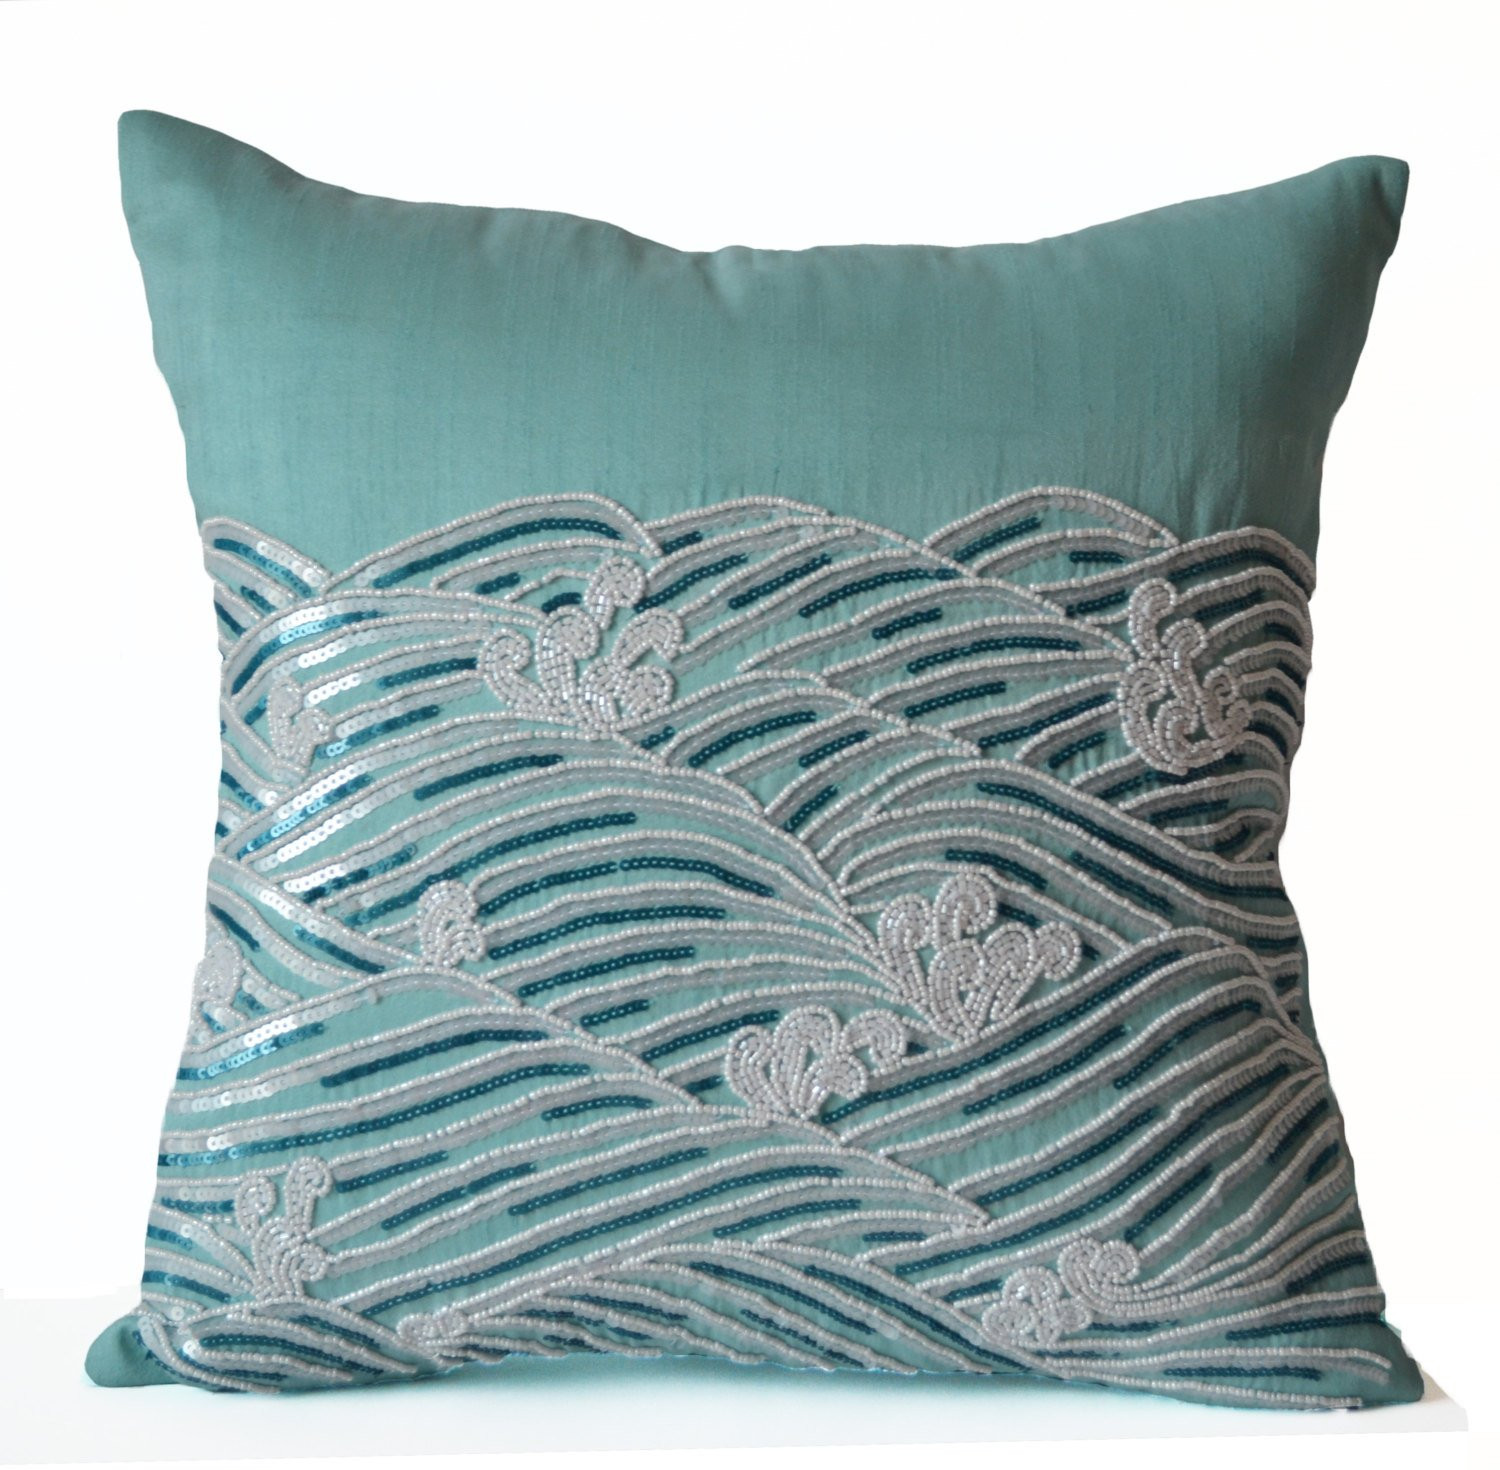 Inspirational Decorative Pillow Cover Teal Throw Pillows Sequin Accent Patterned Throw Of Amazing 40 Photos Patterned Throw